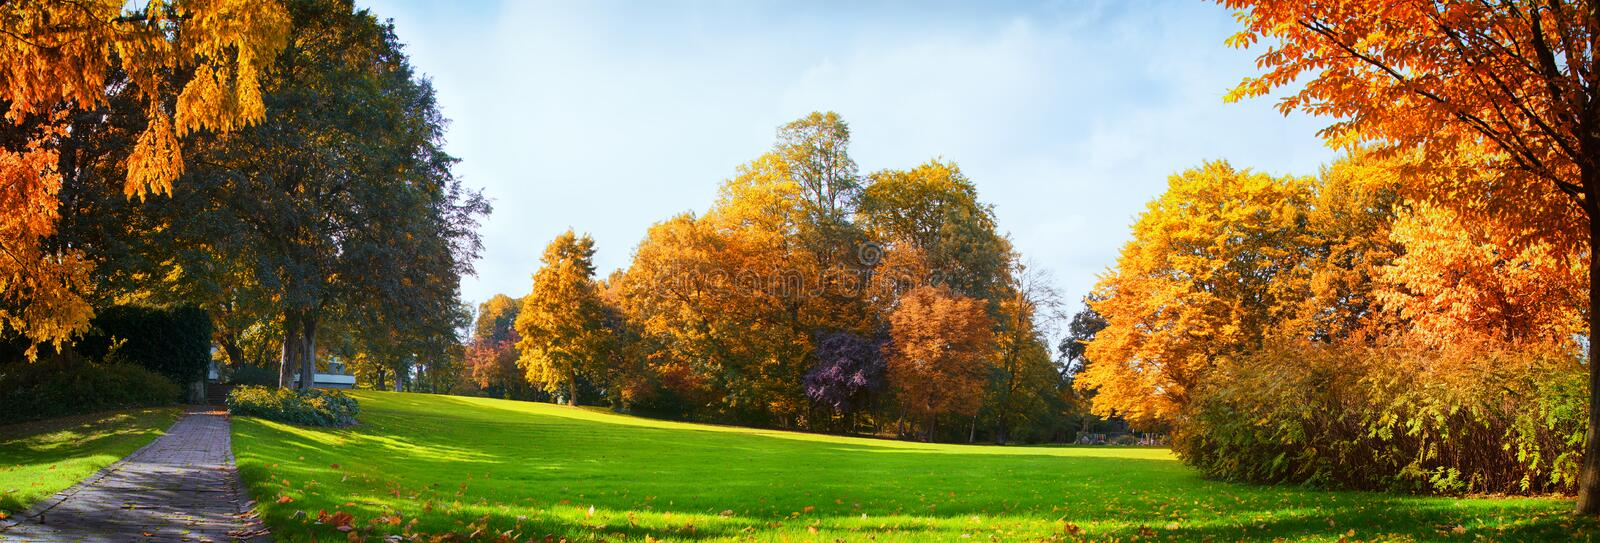 Colorful Autumn Trees And Blue Cloudy Sky - Seasonal Park Without Any People stock photos